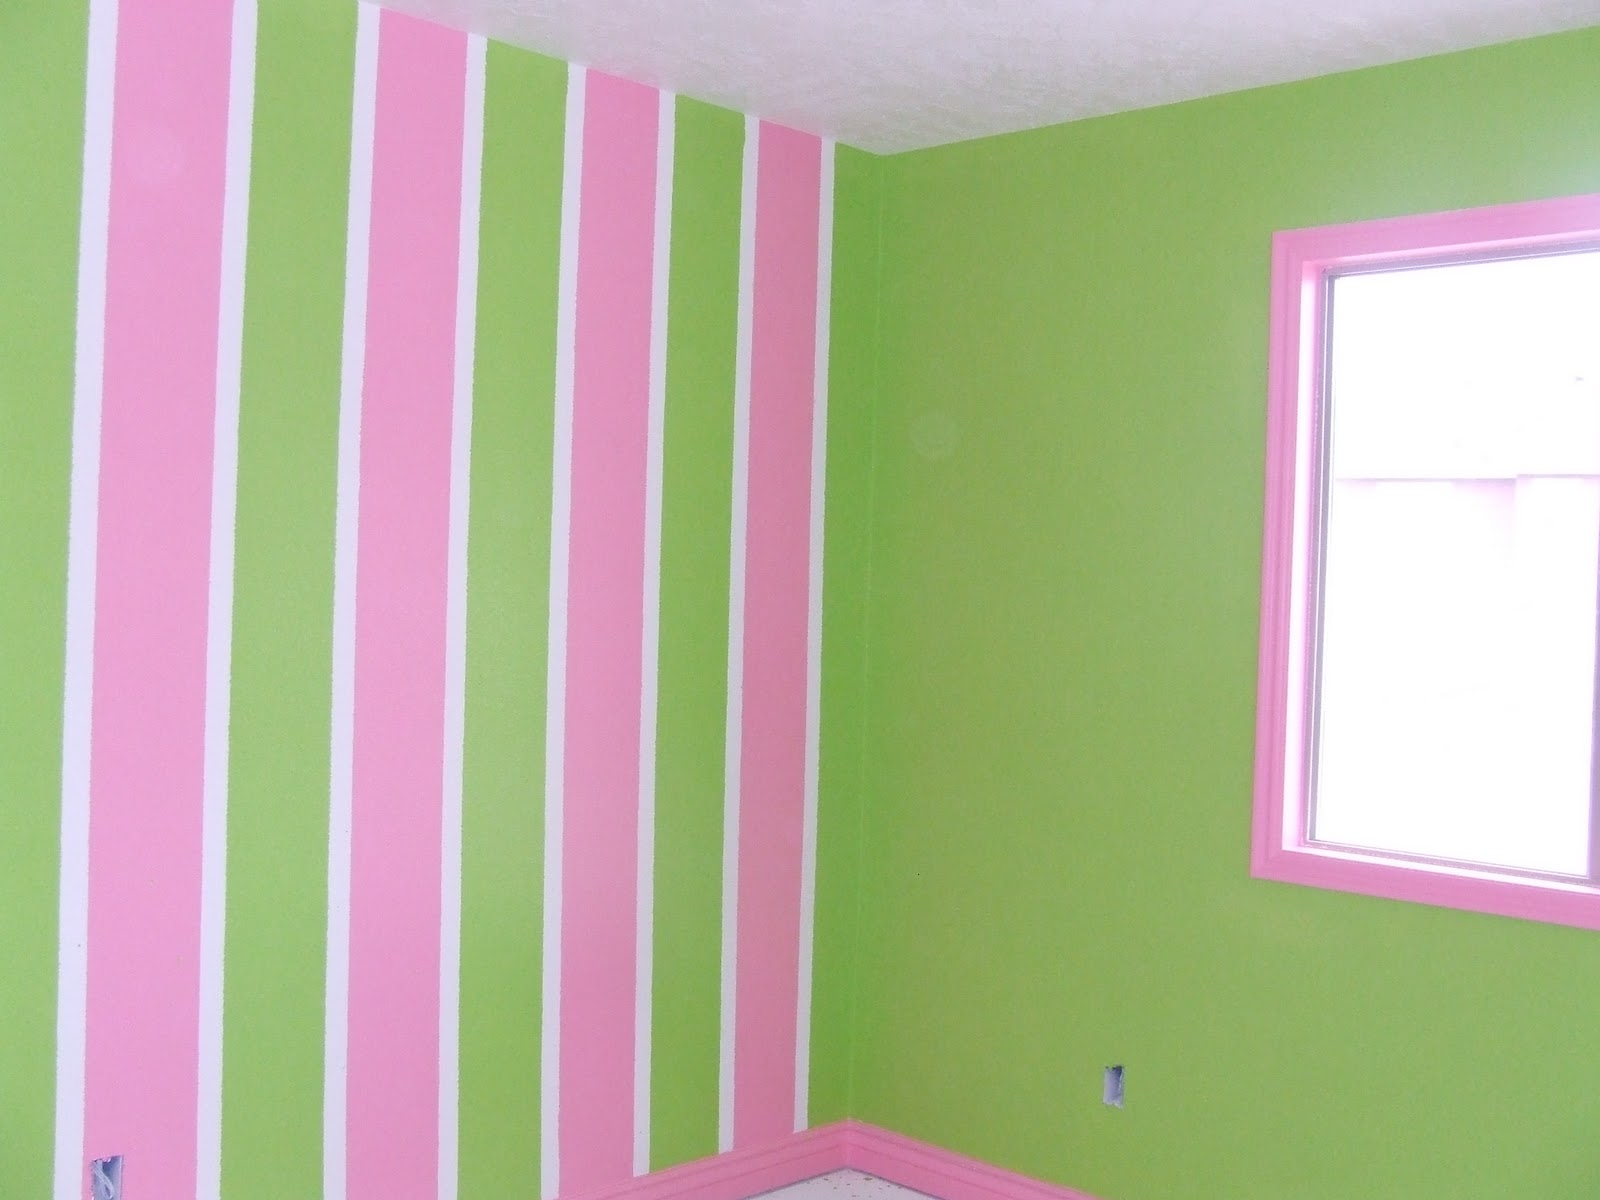 Girls Bedroom Paint Ideas Stripes tona painting job pictures: stripes - awesome girl room idea